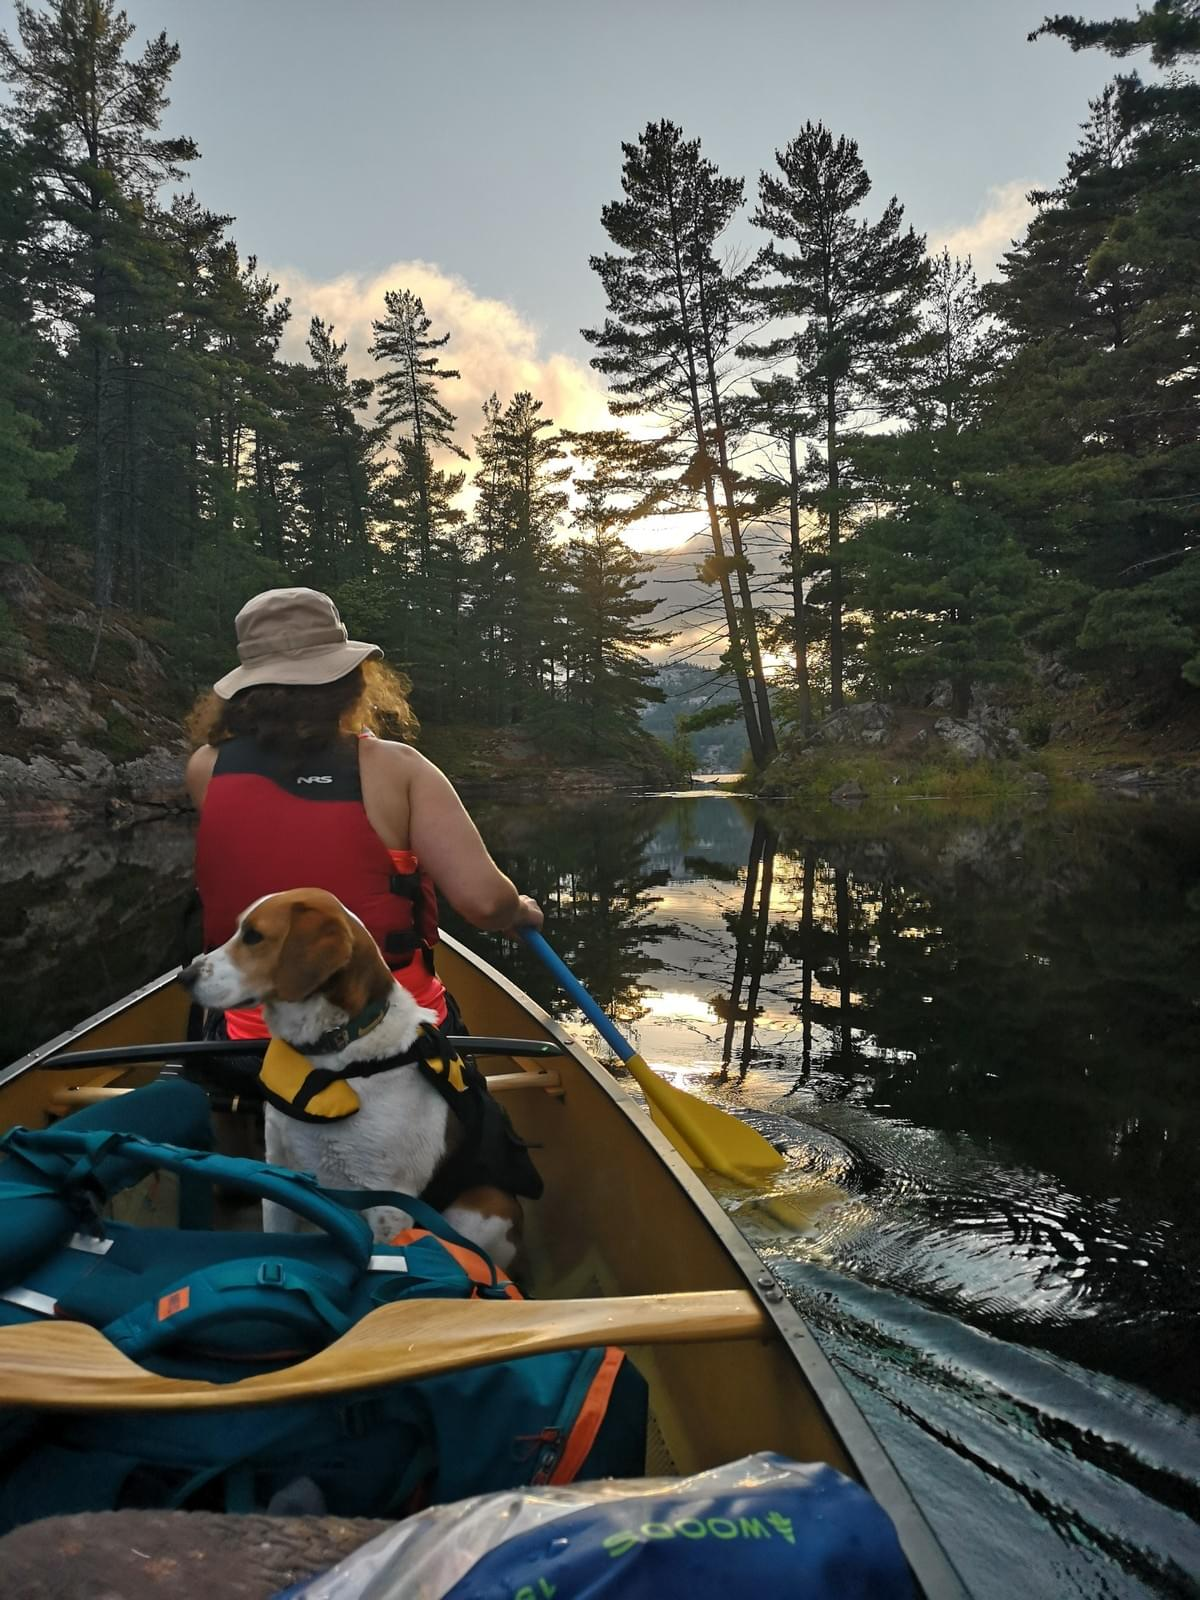 woman paddling a canoe filled with camping gear and a dog in Killarney Provincial Park